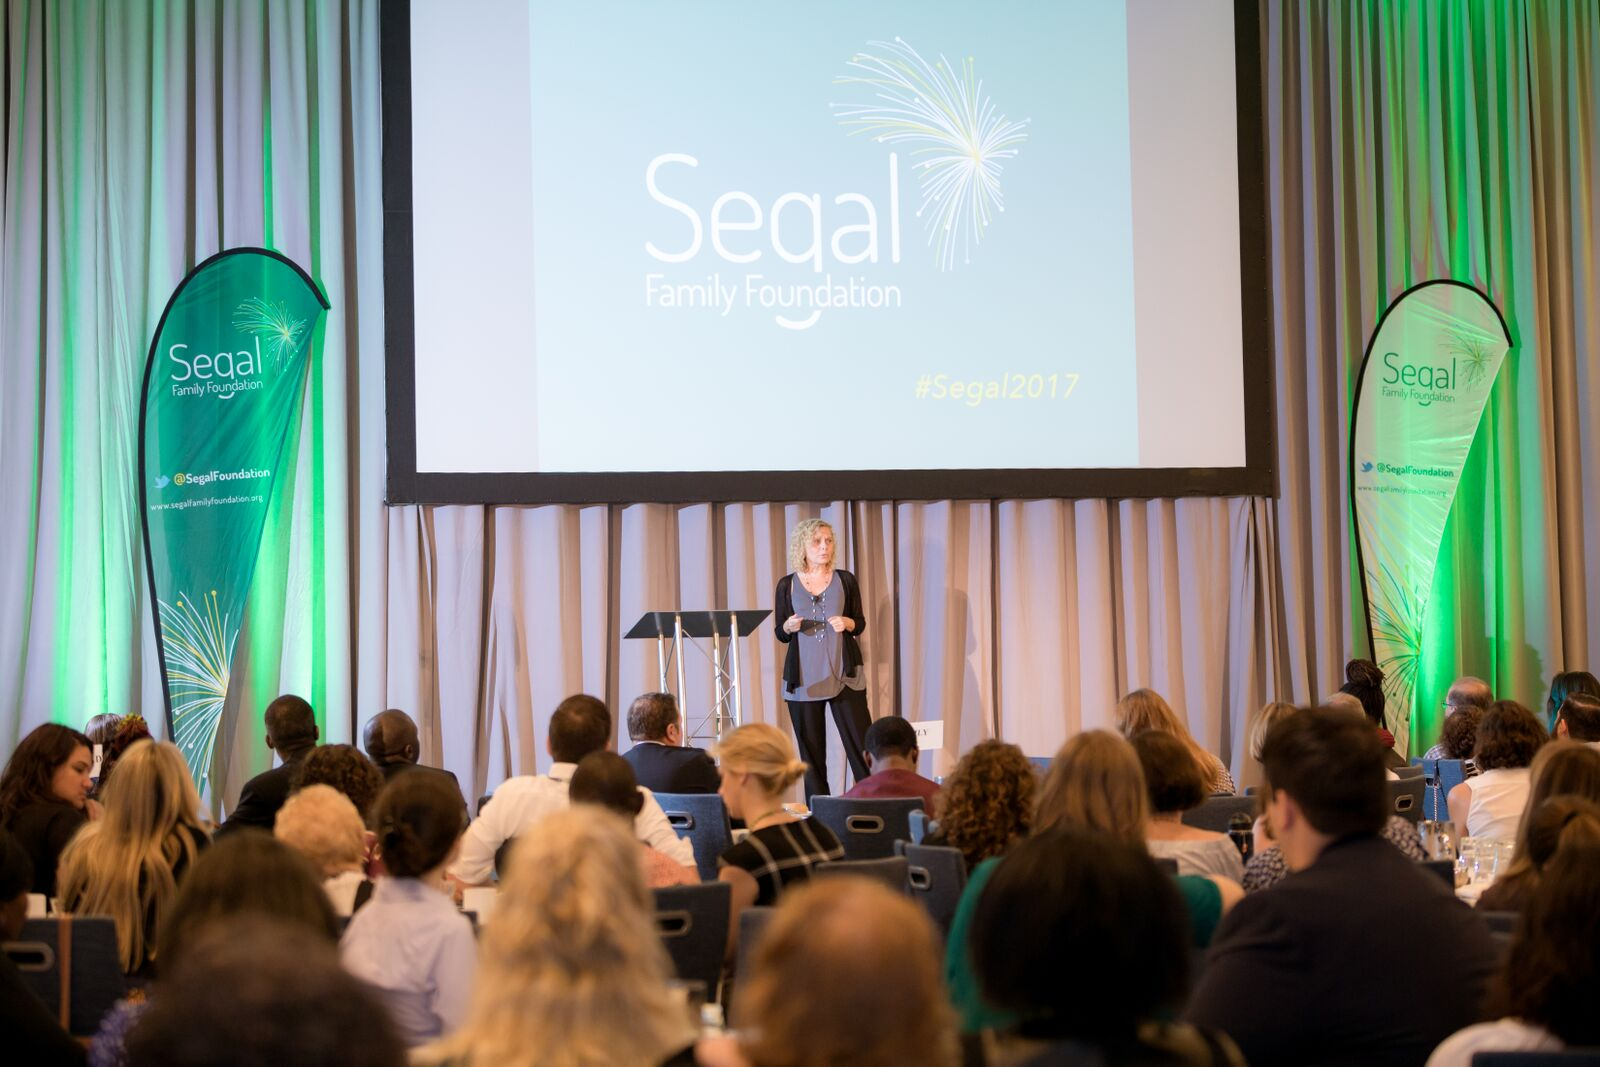 Segal Family Annual Foundation Non-profit Conference Gala Jersey City Crowd Audience Speakers Corporate